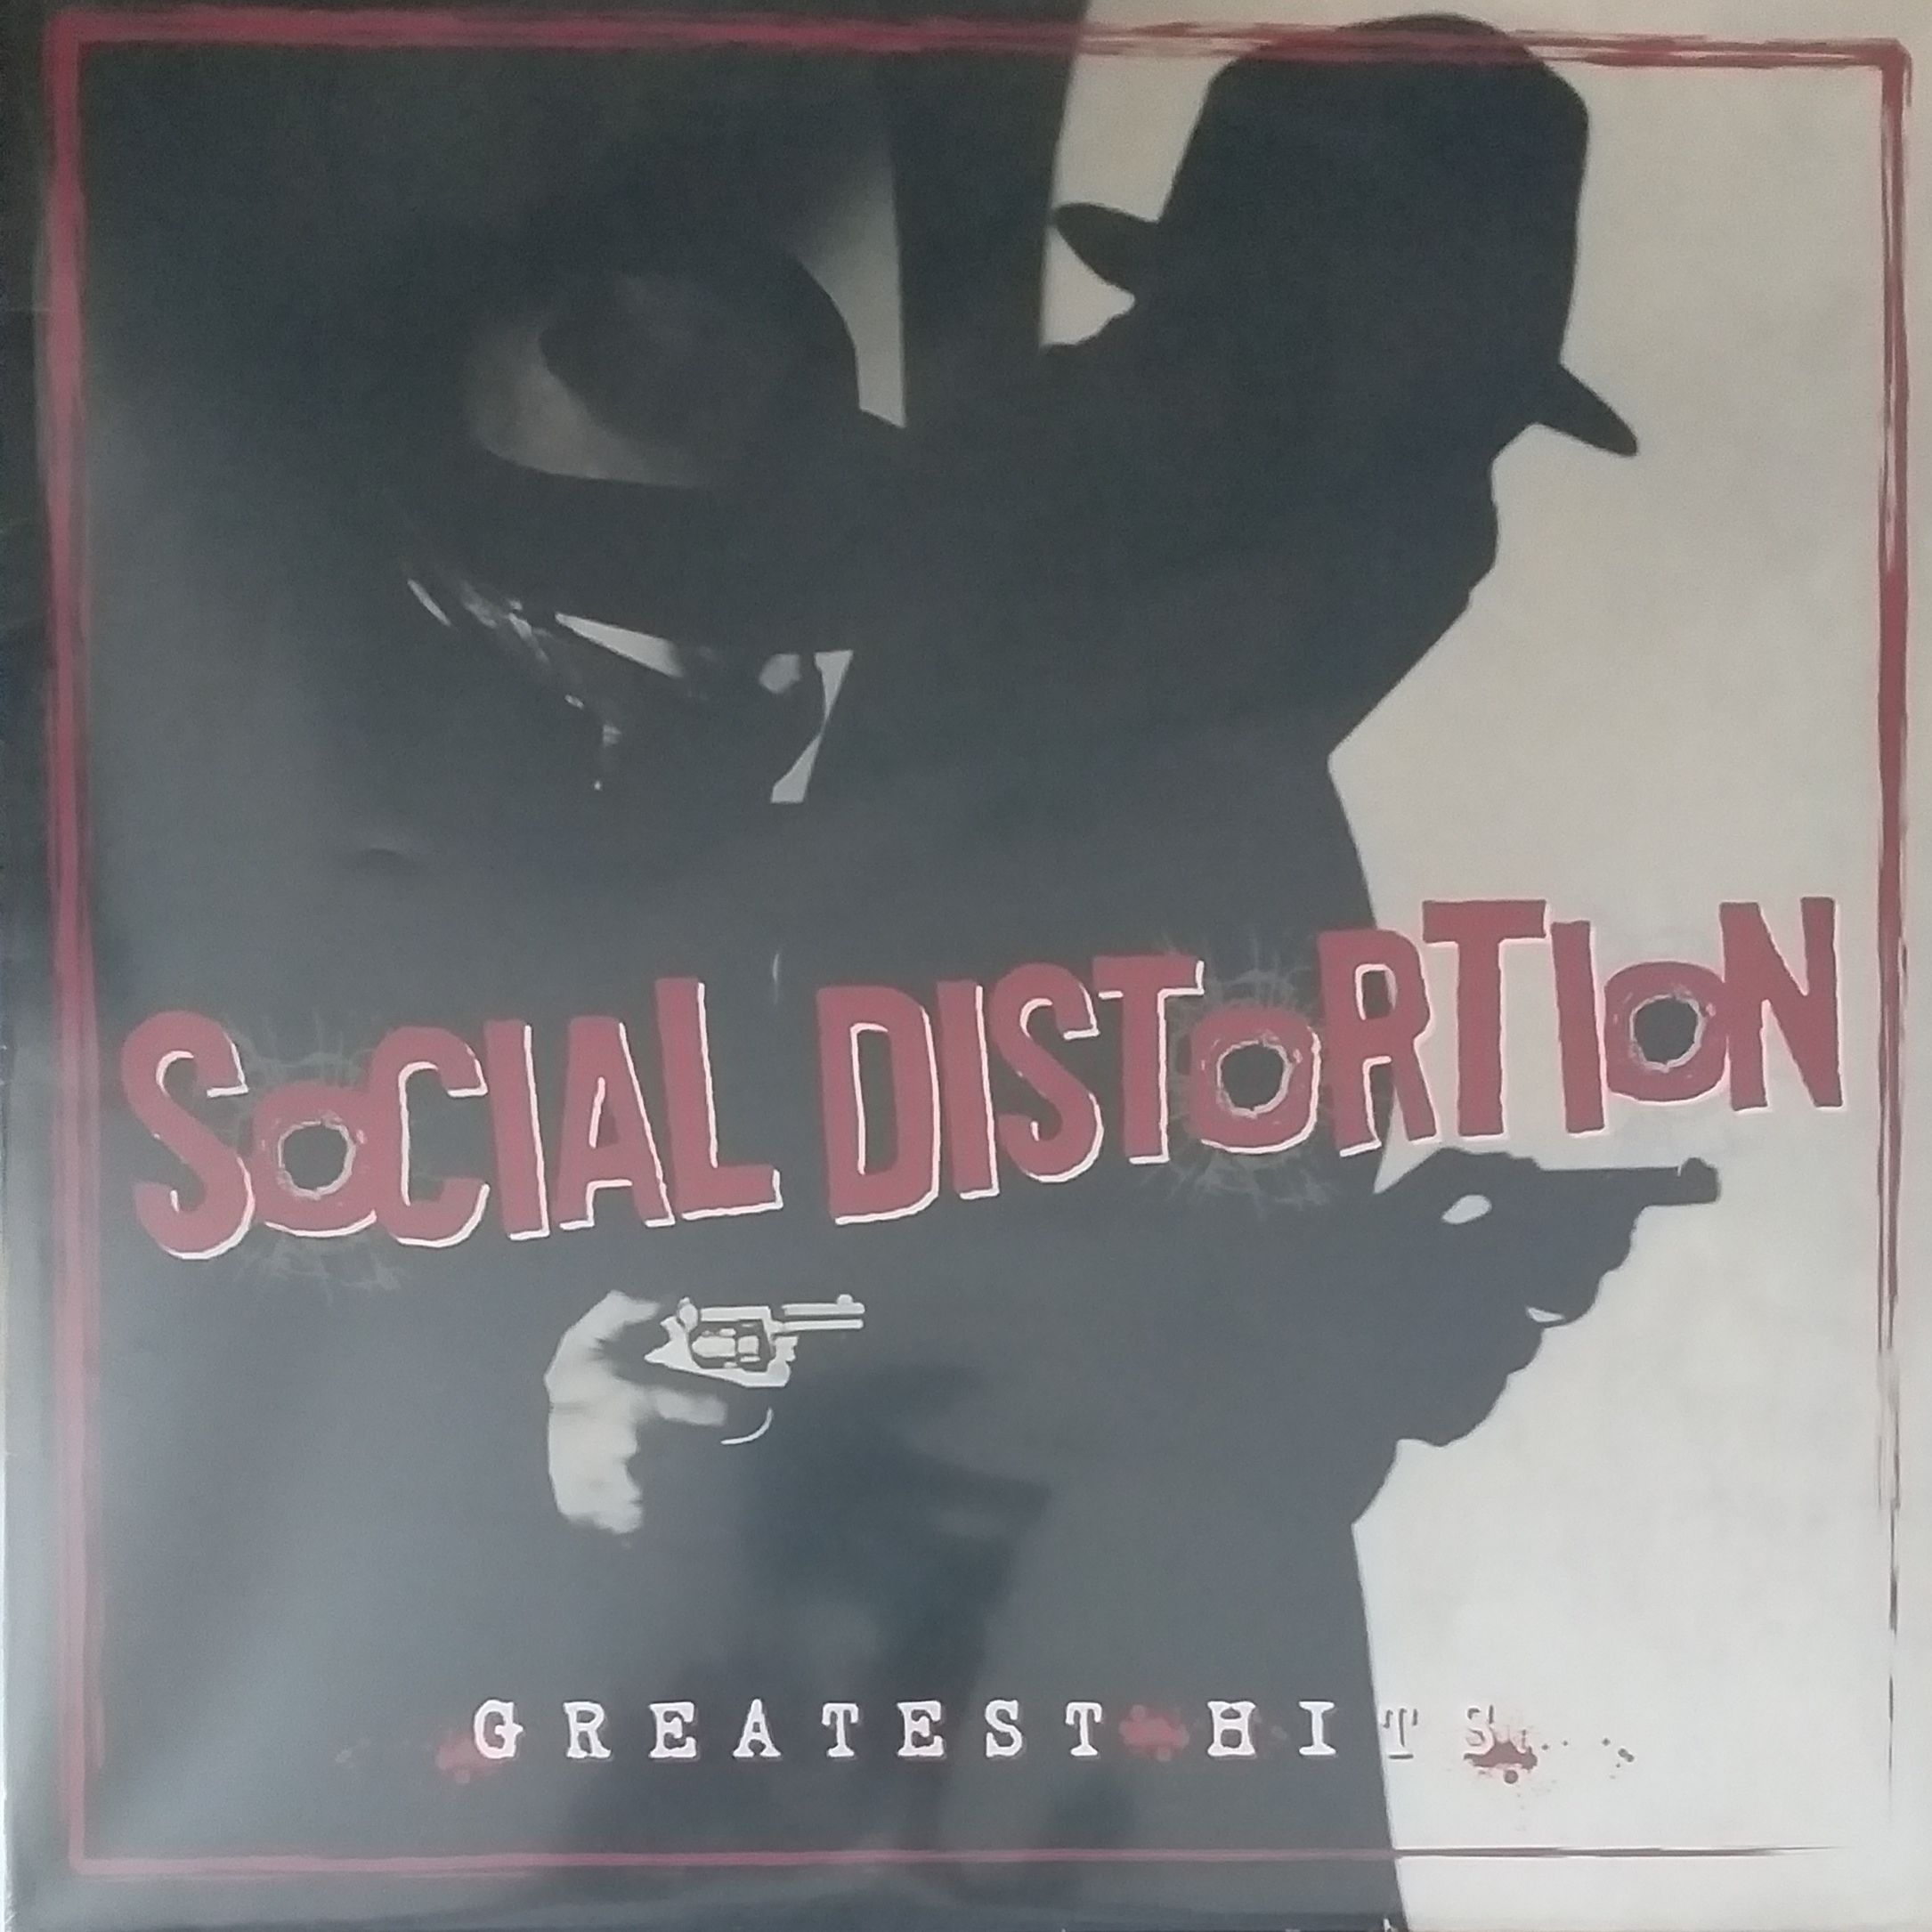 Social distortion  Greatest hits LP undefined